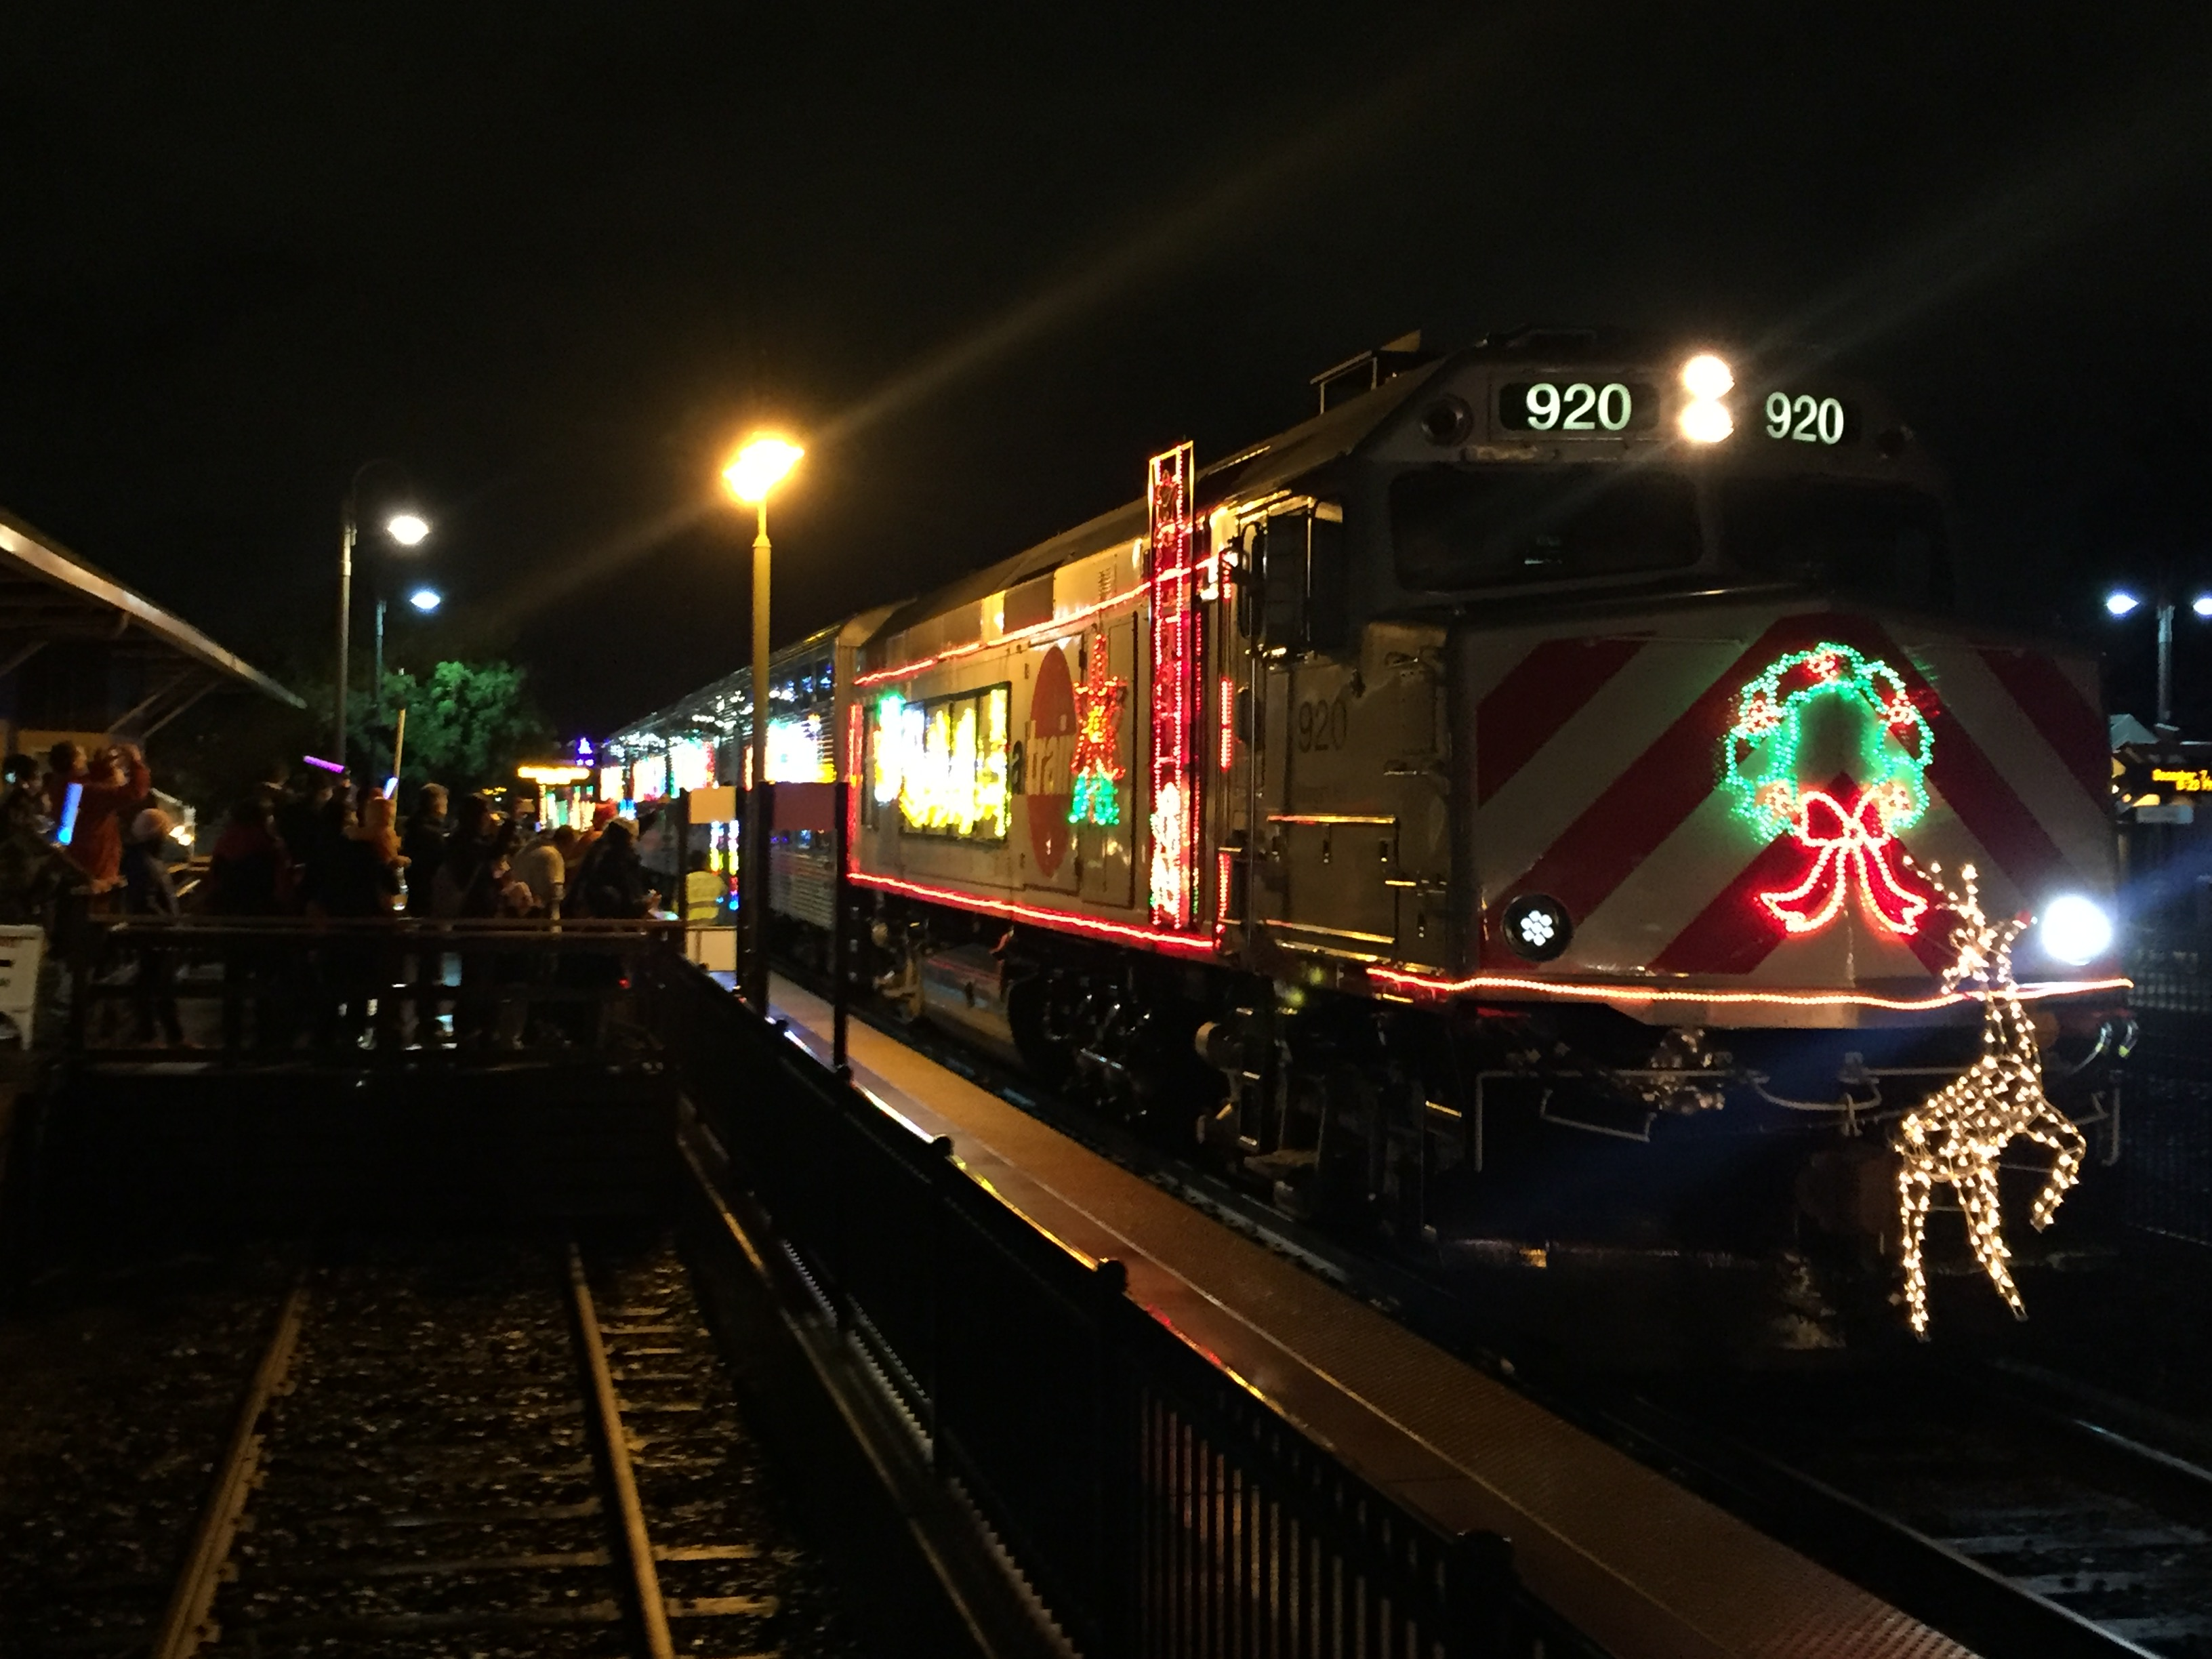 Caltrain Holiday Train, with unit 920, Morgan Hill, as the lead locomotive